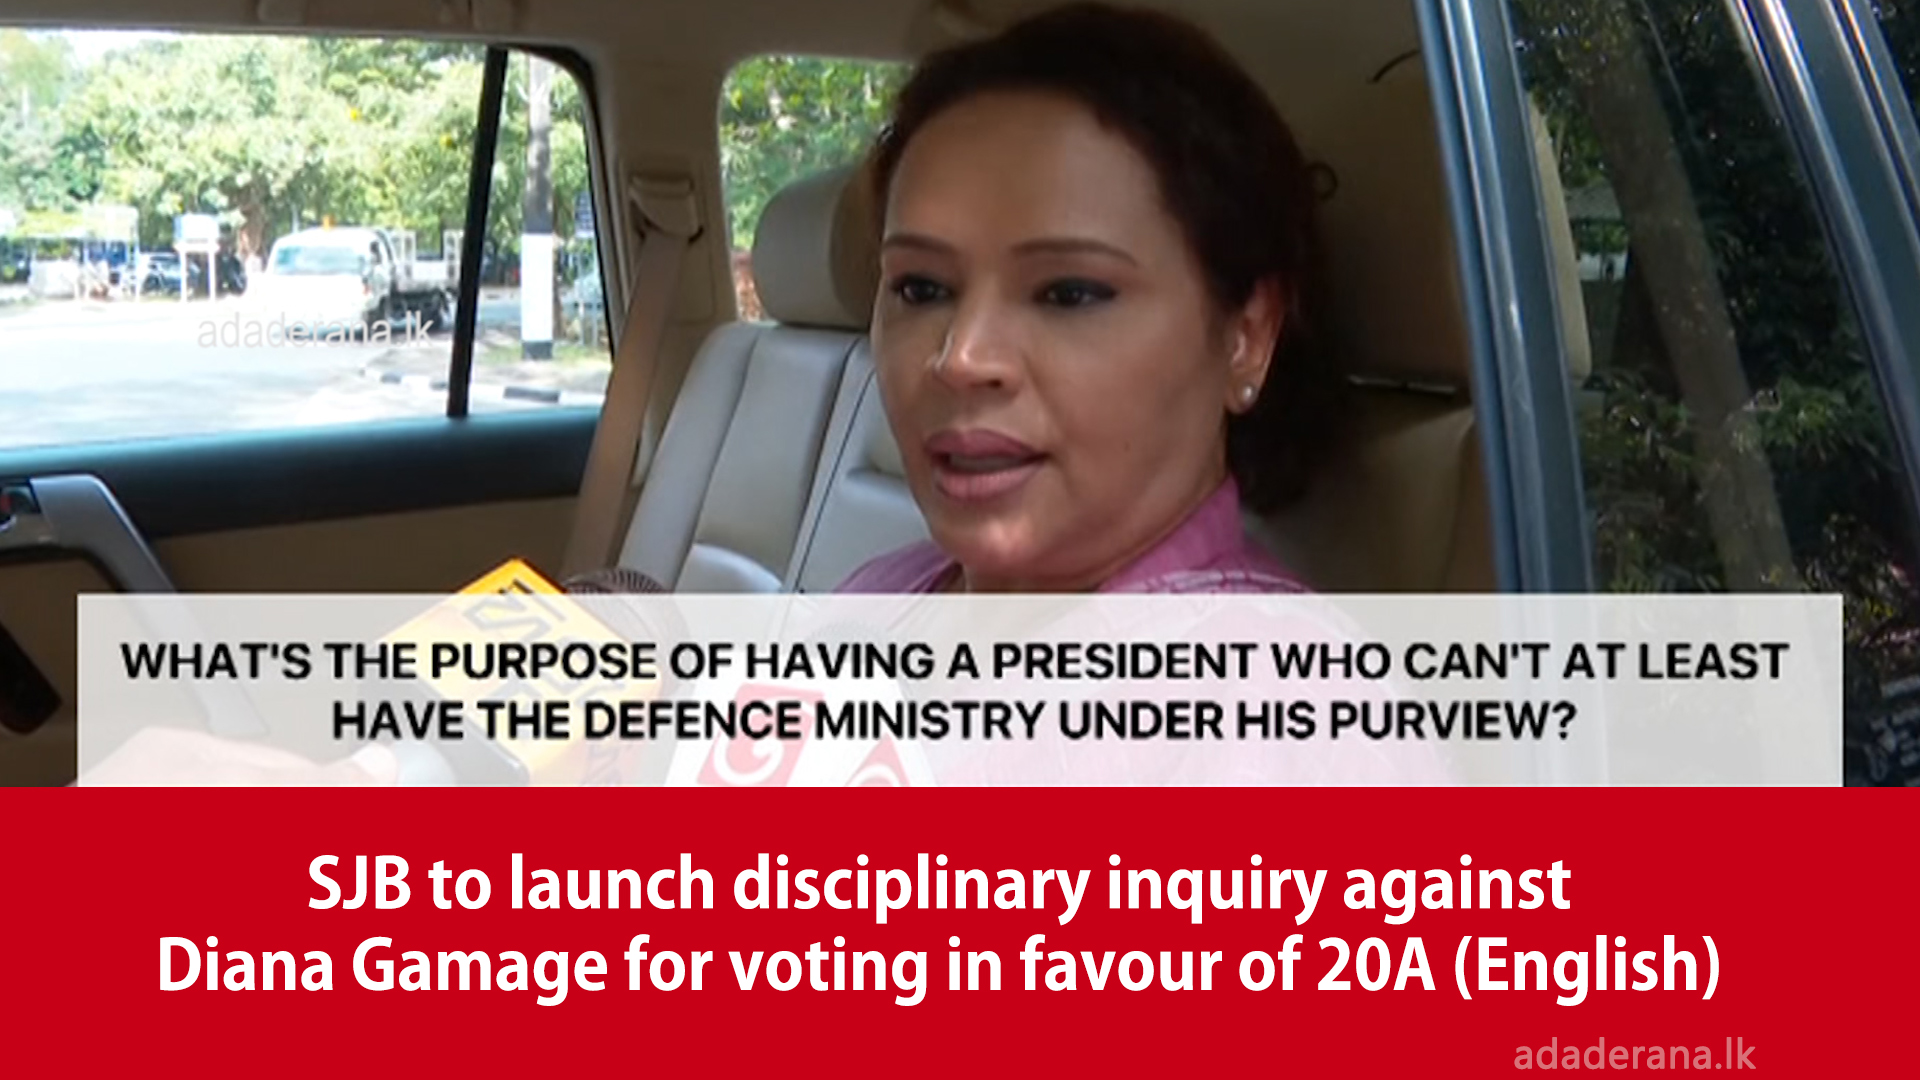 SJB to launch disciplinary inquiry against Diana Gamage for voting in favour of 20A (English)